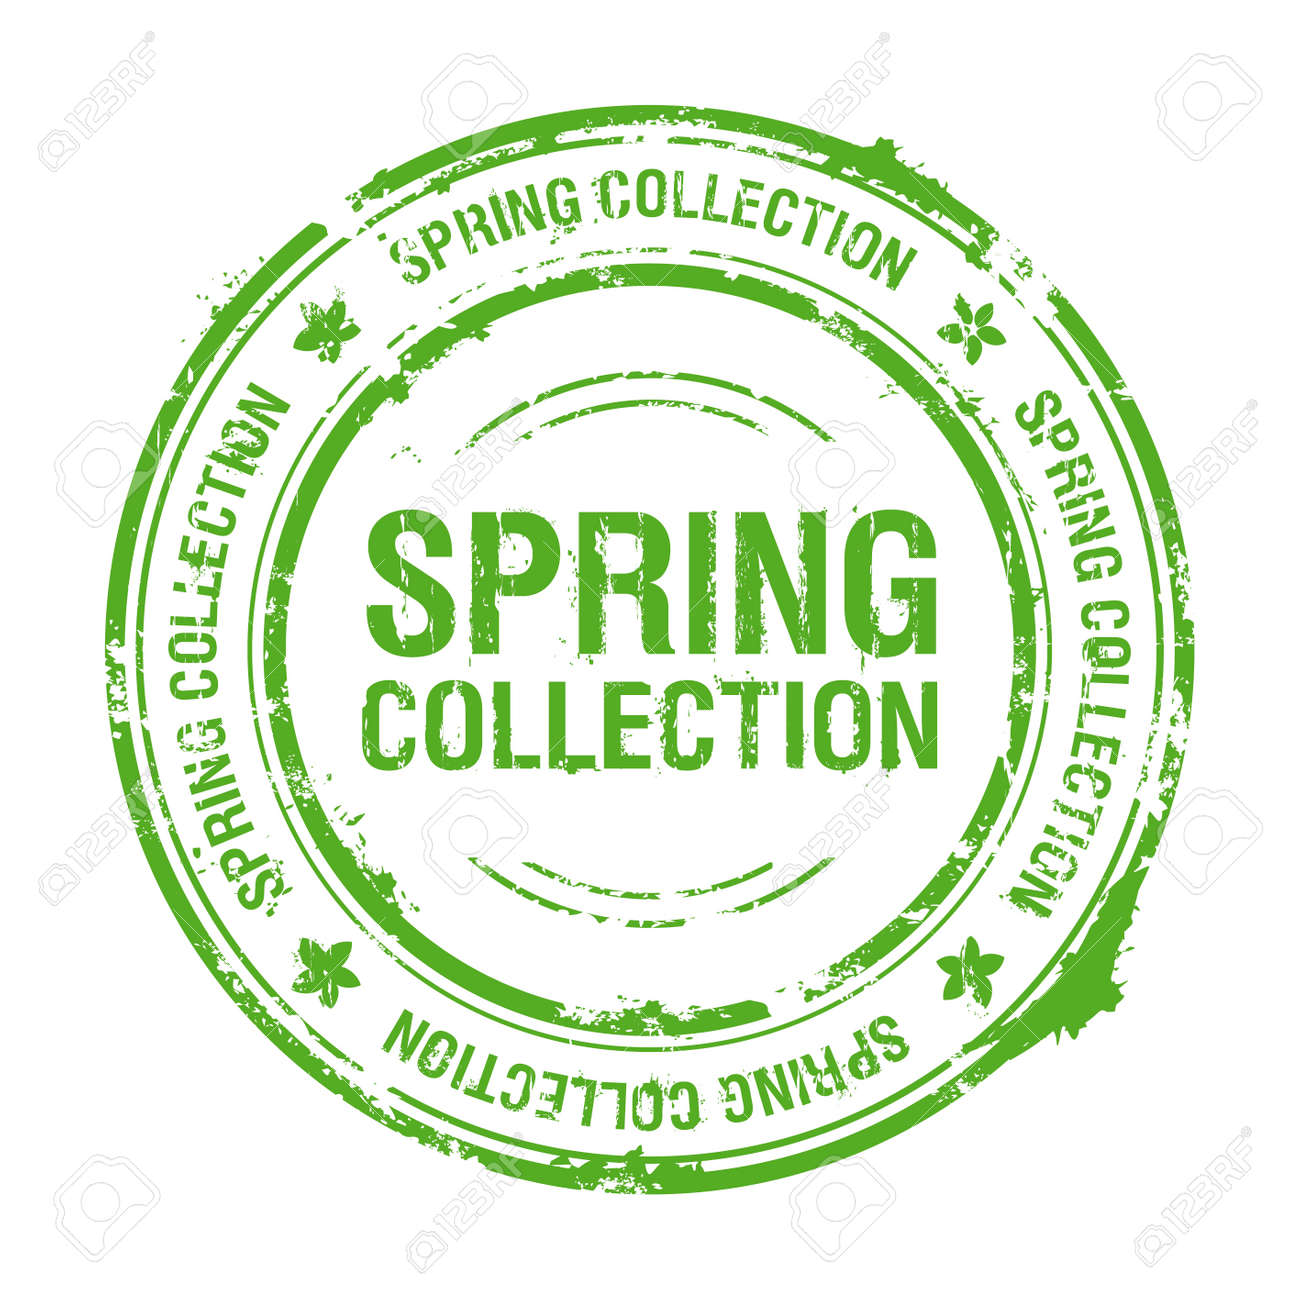 spring collection rubber stamp Stock Vector - 8853054